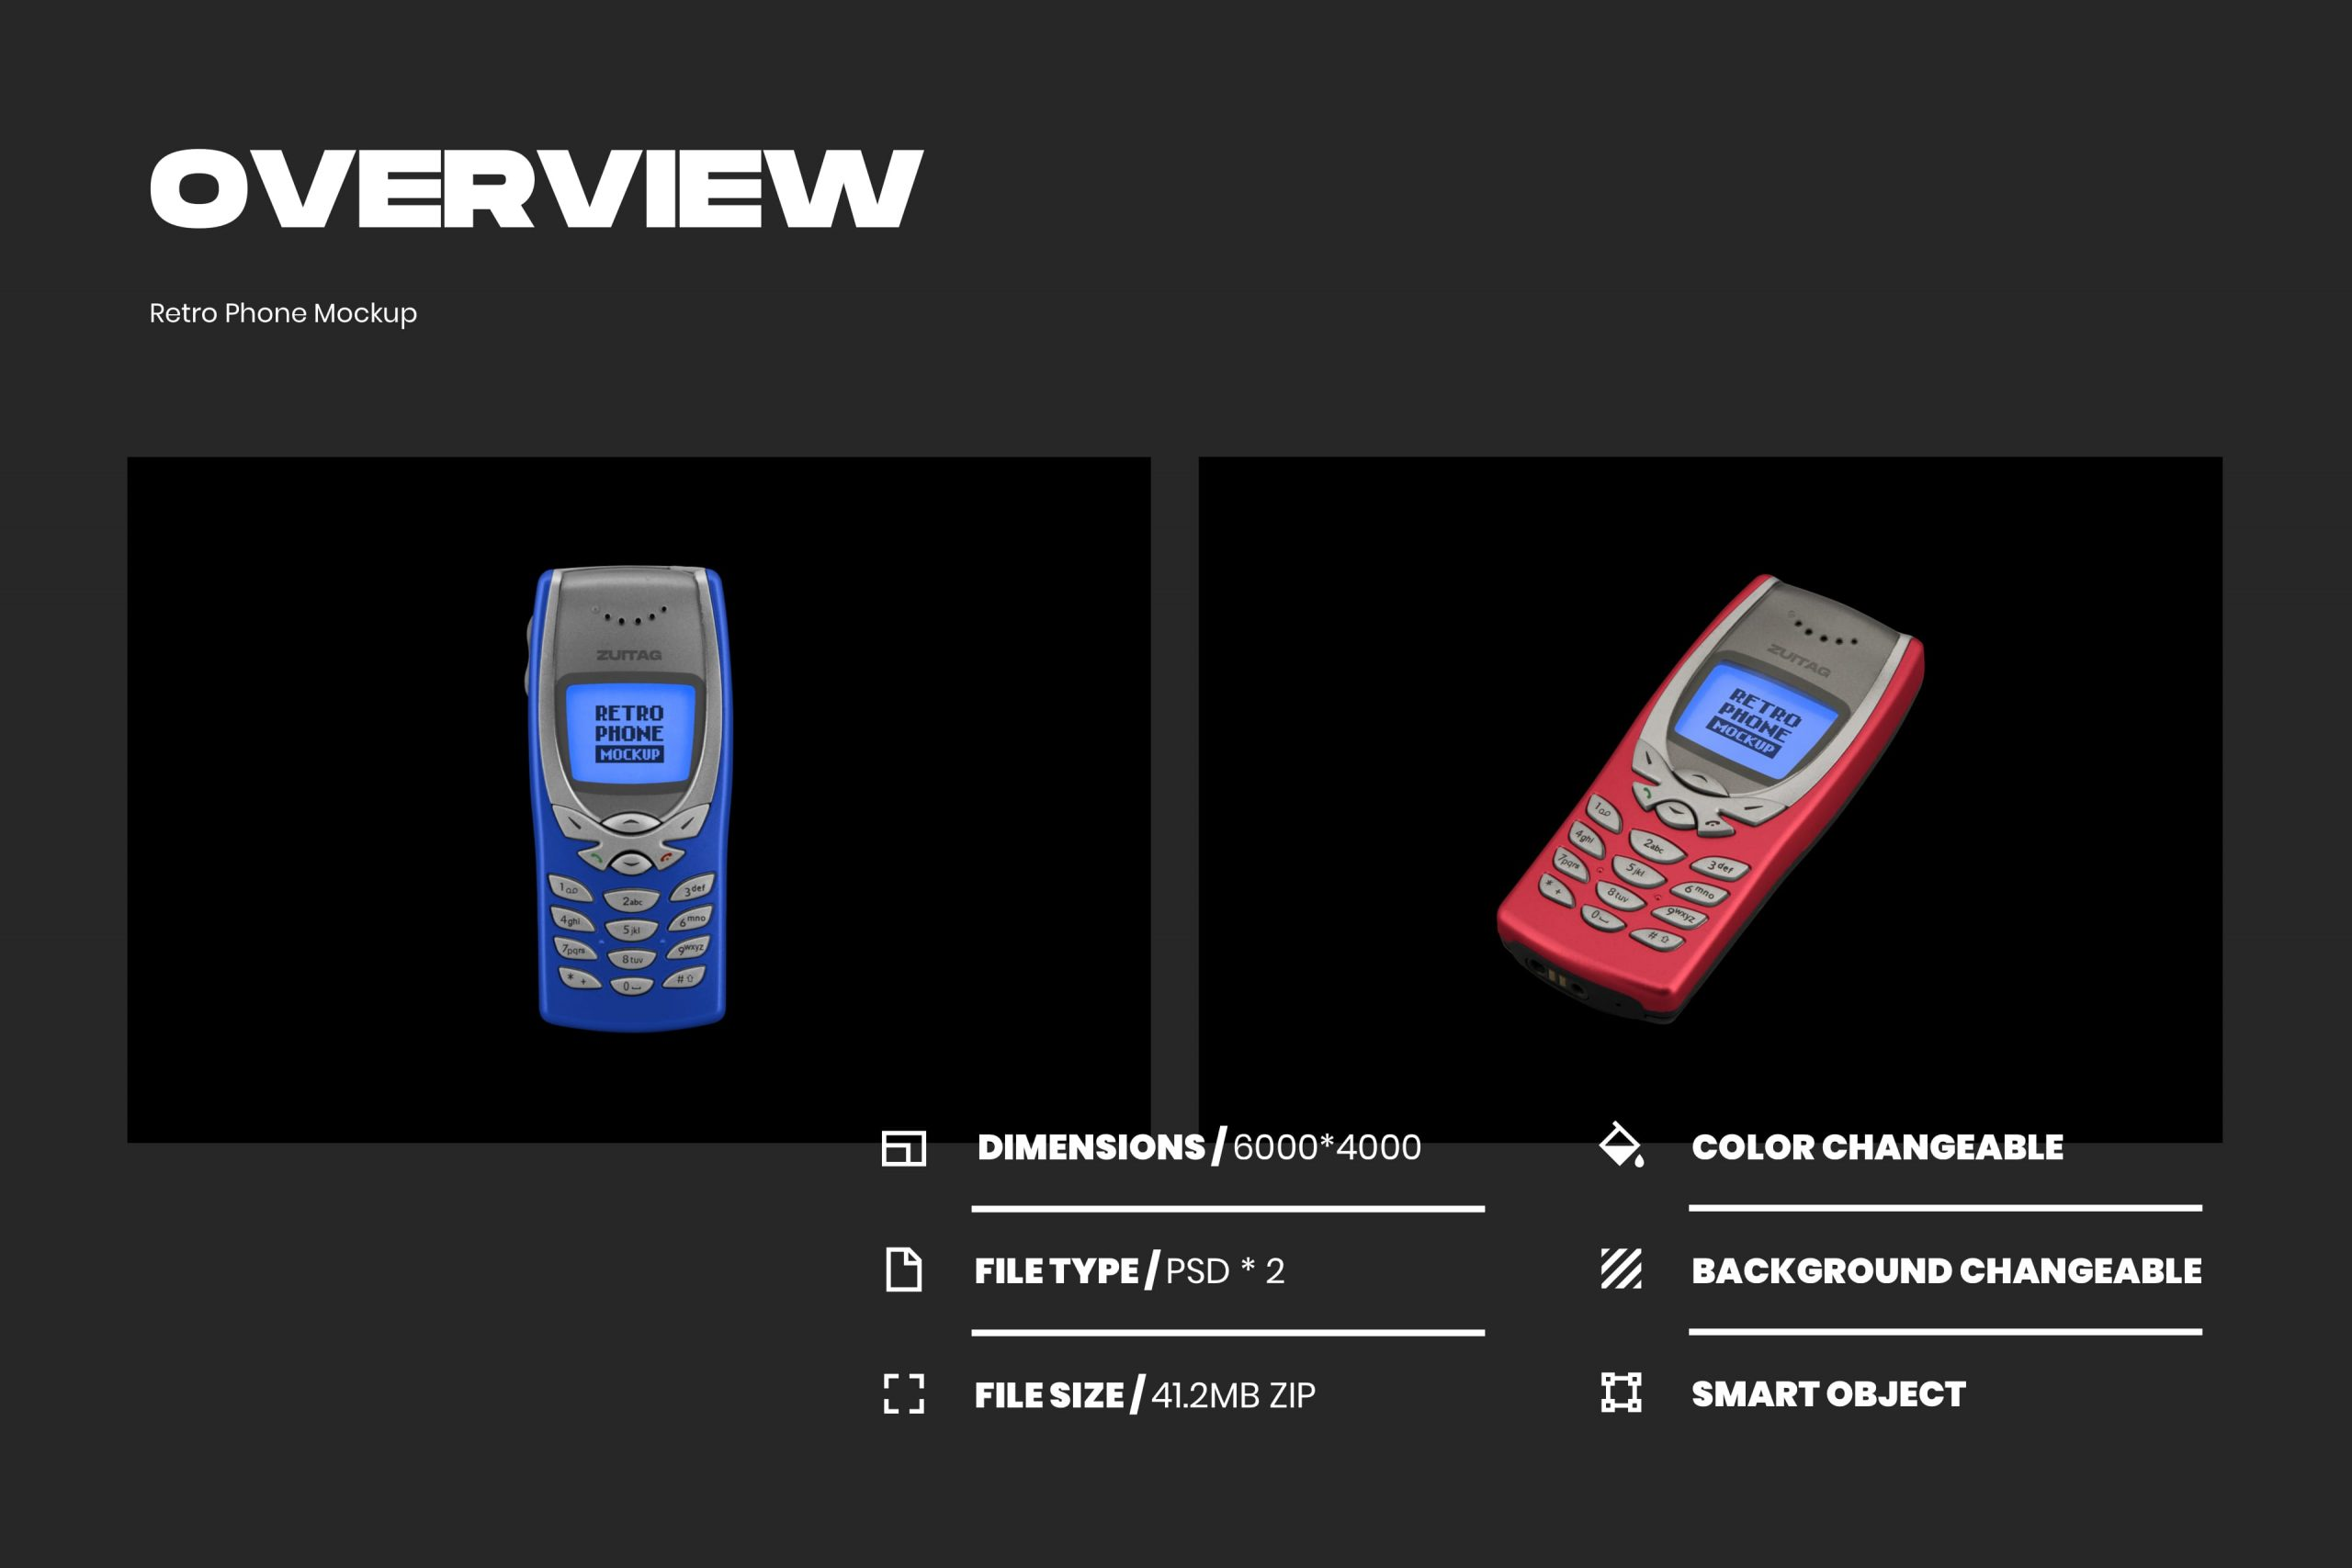 Retro Phone Mockup - Overview